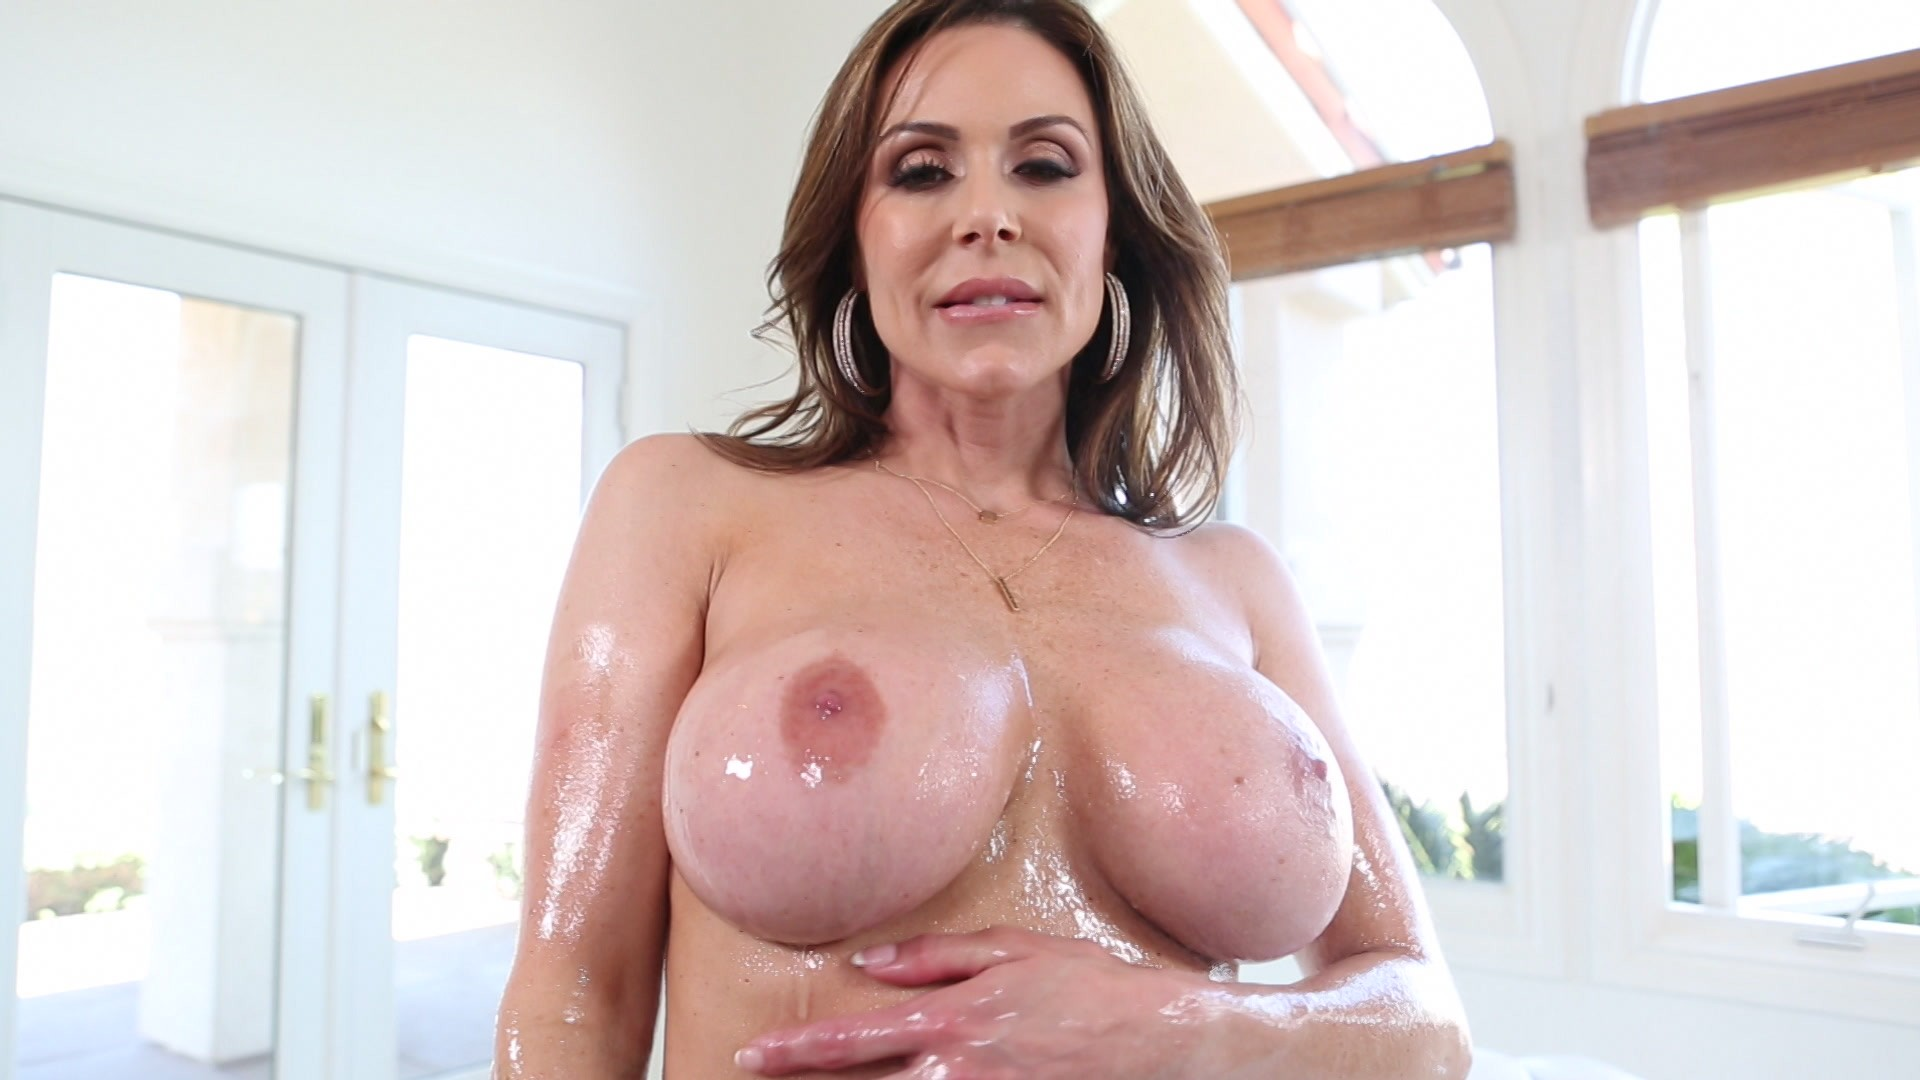 Big Wet Milf Tits  Elegant Angel  Sugarinstant-7184